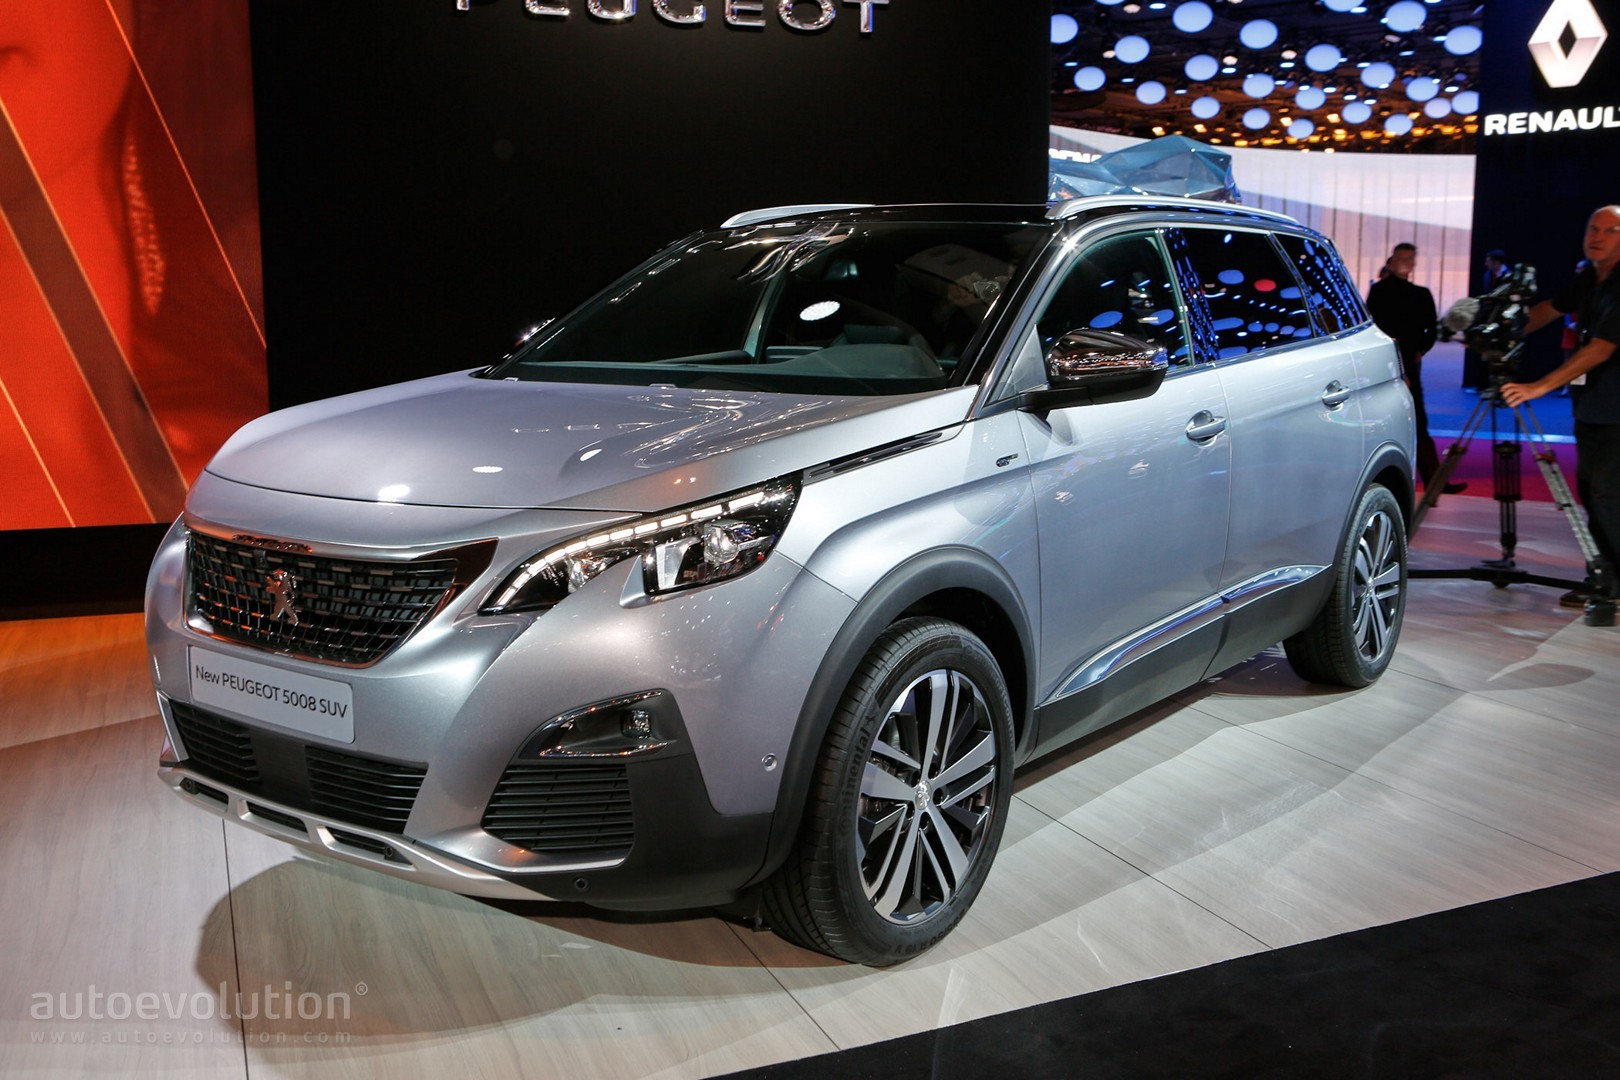 All New Peugeot 5008 Is A 7 Seater Crossover In Paris